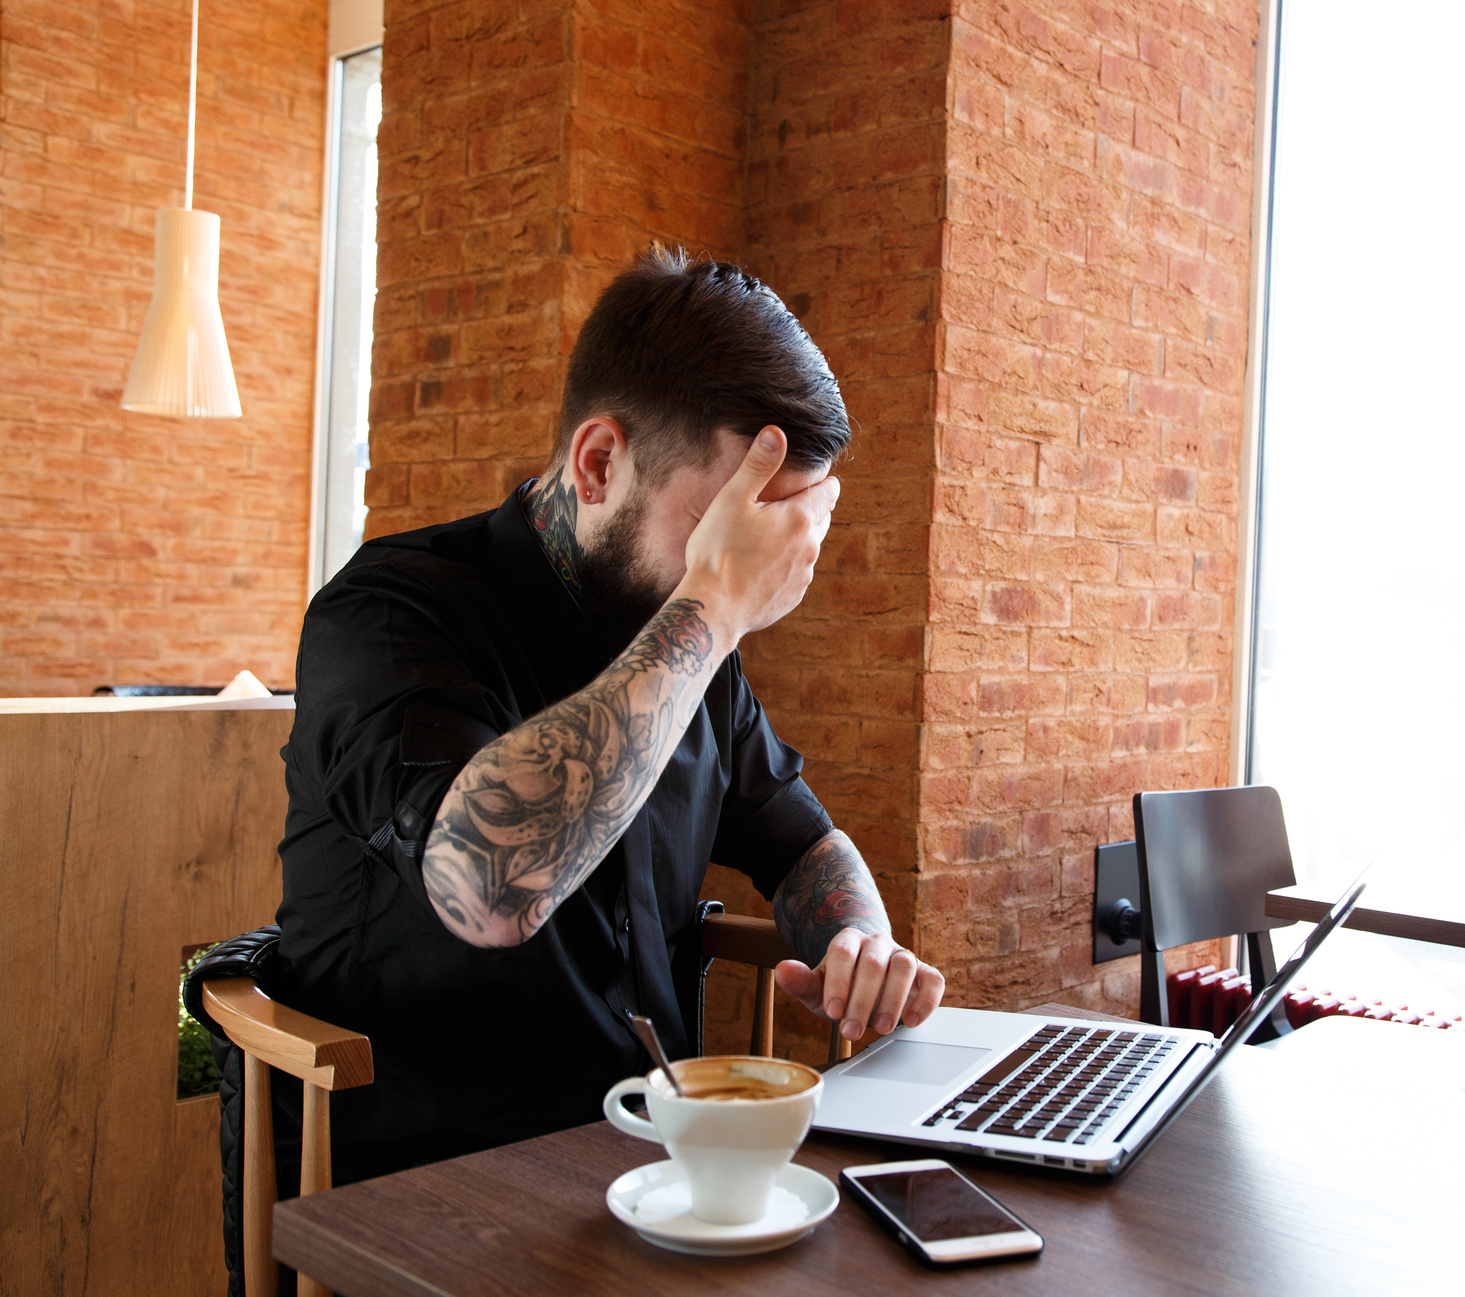 Man with tattoo facepalming